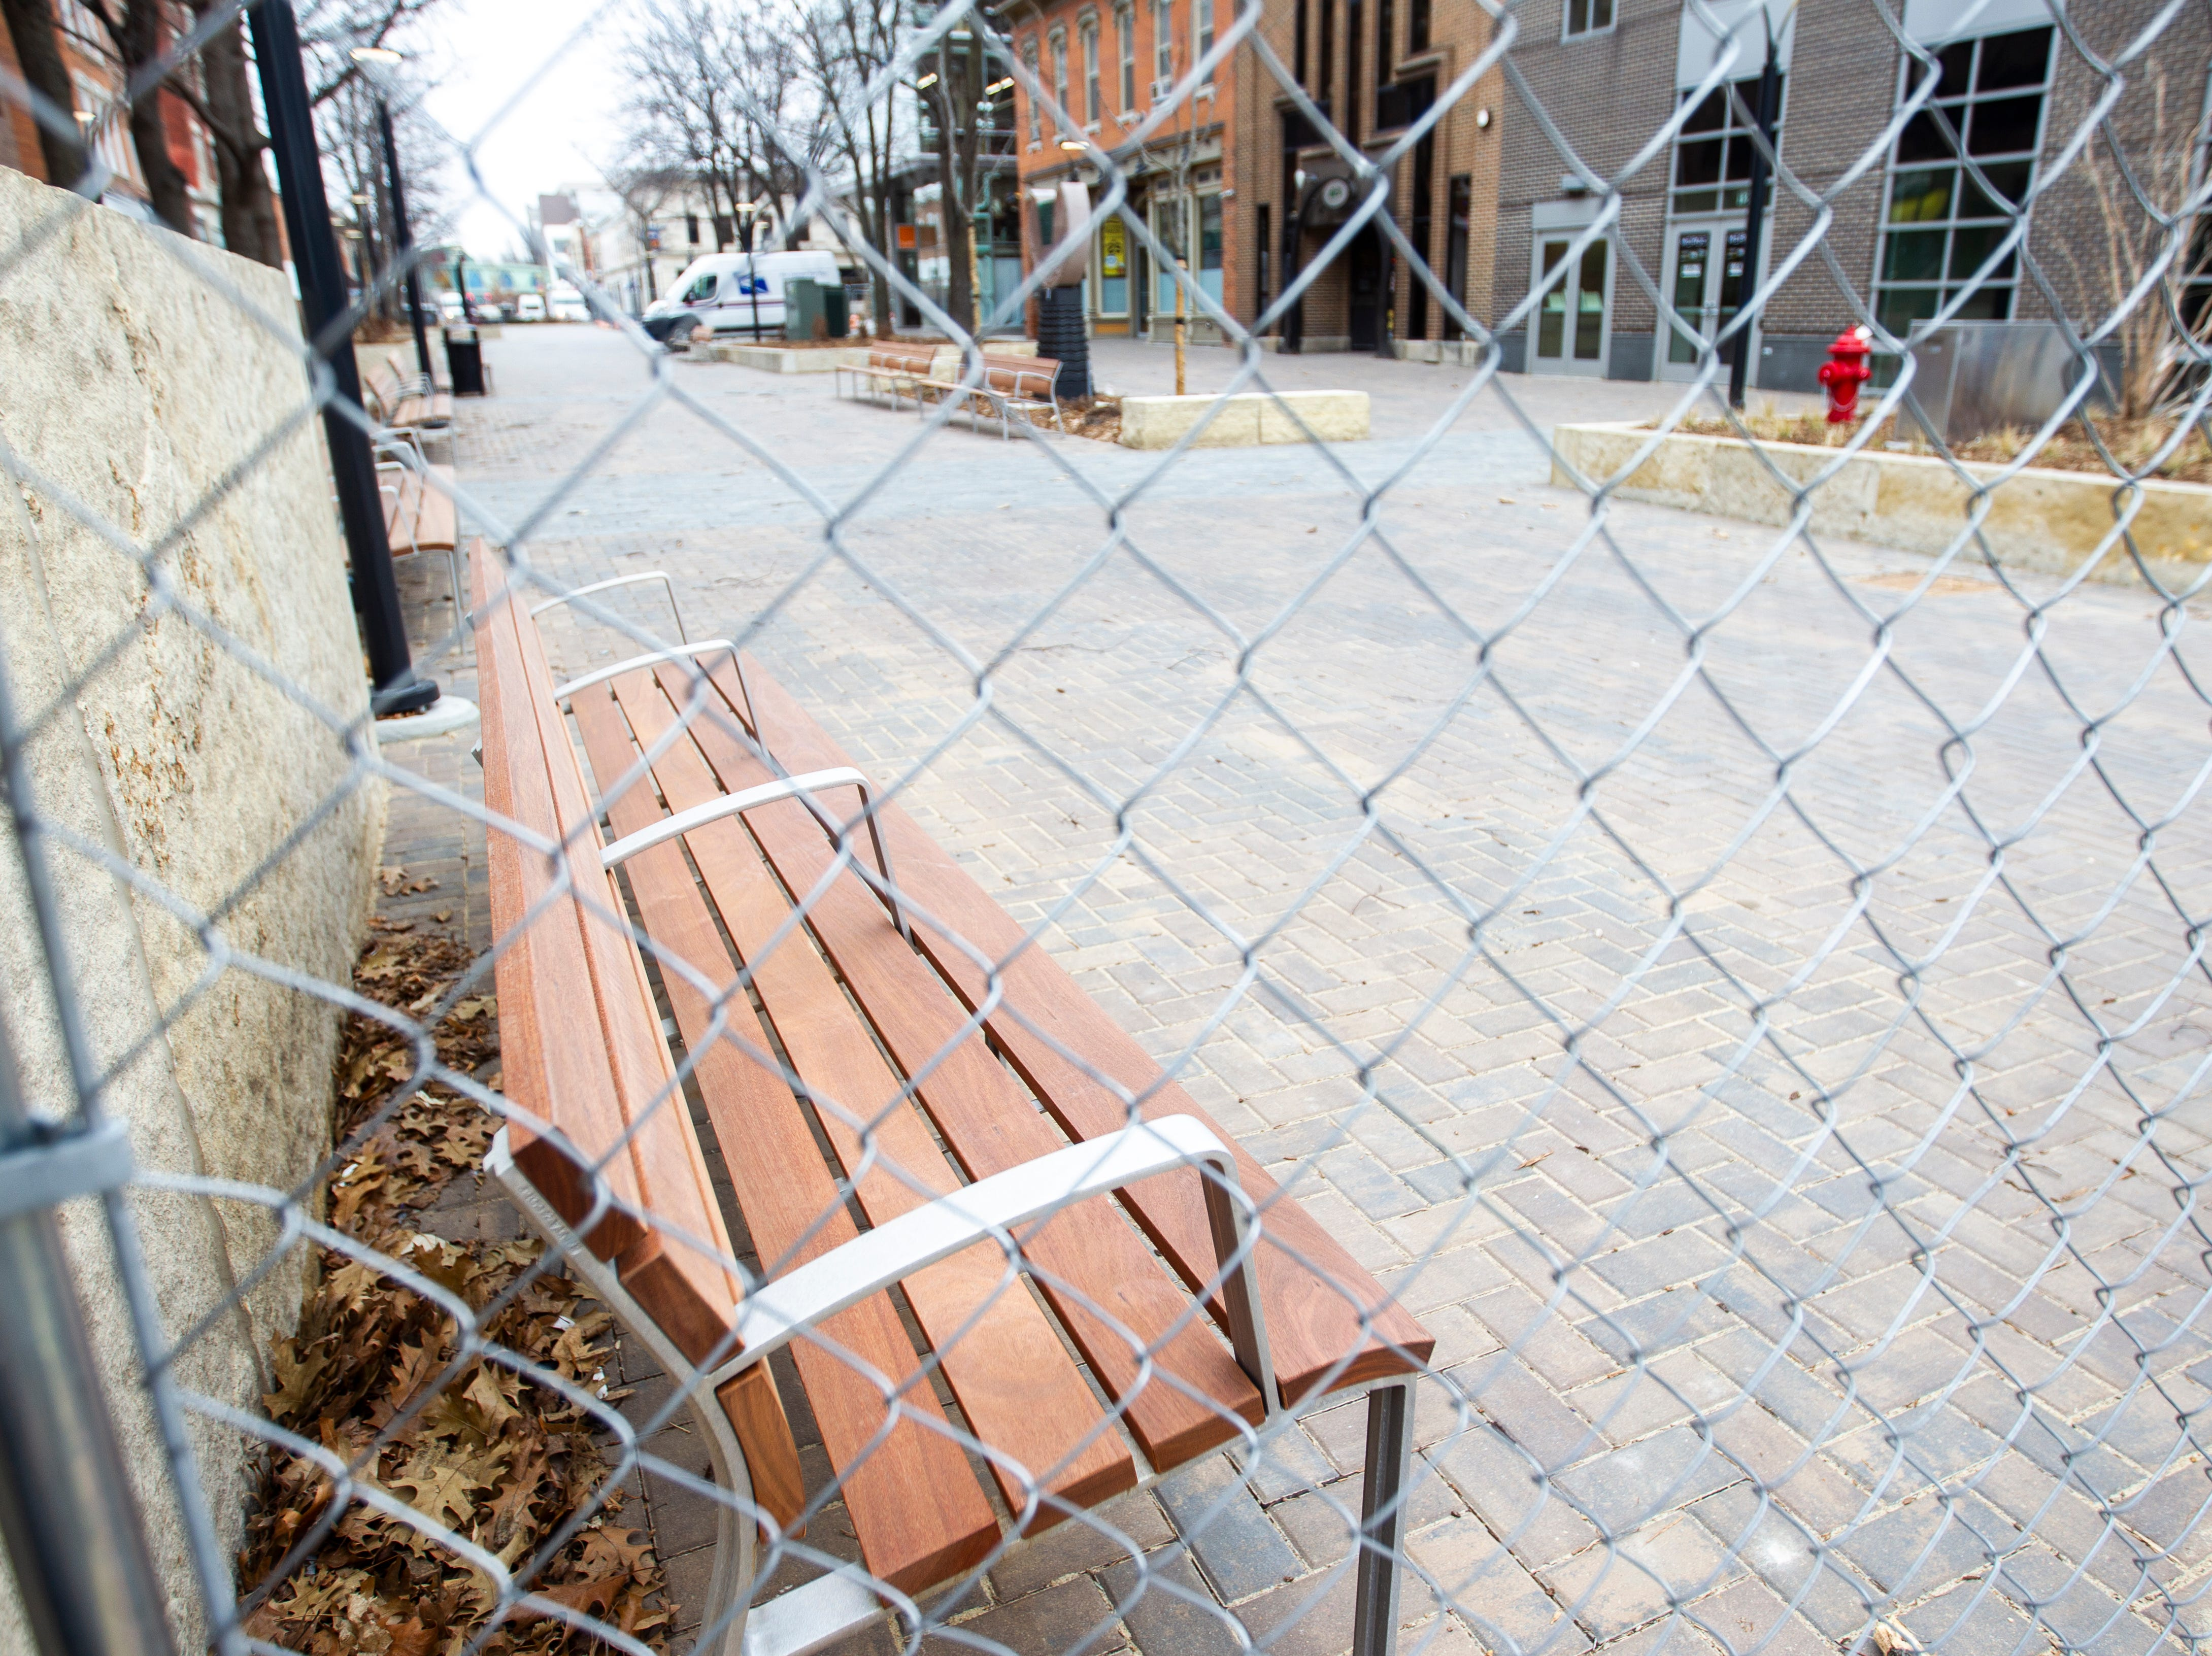 A new bench with handrails is seen through a chain link fence from construction on Friday, Jan. 11, 2019, along the pedestrian mall in downtown Iowa City, Iowa.